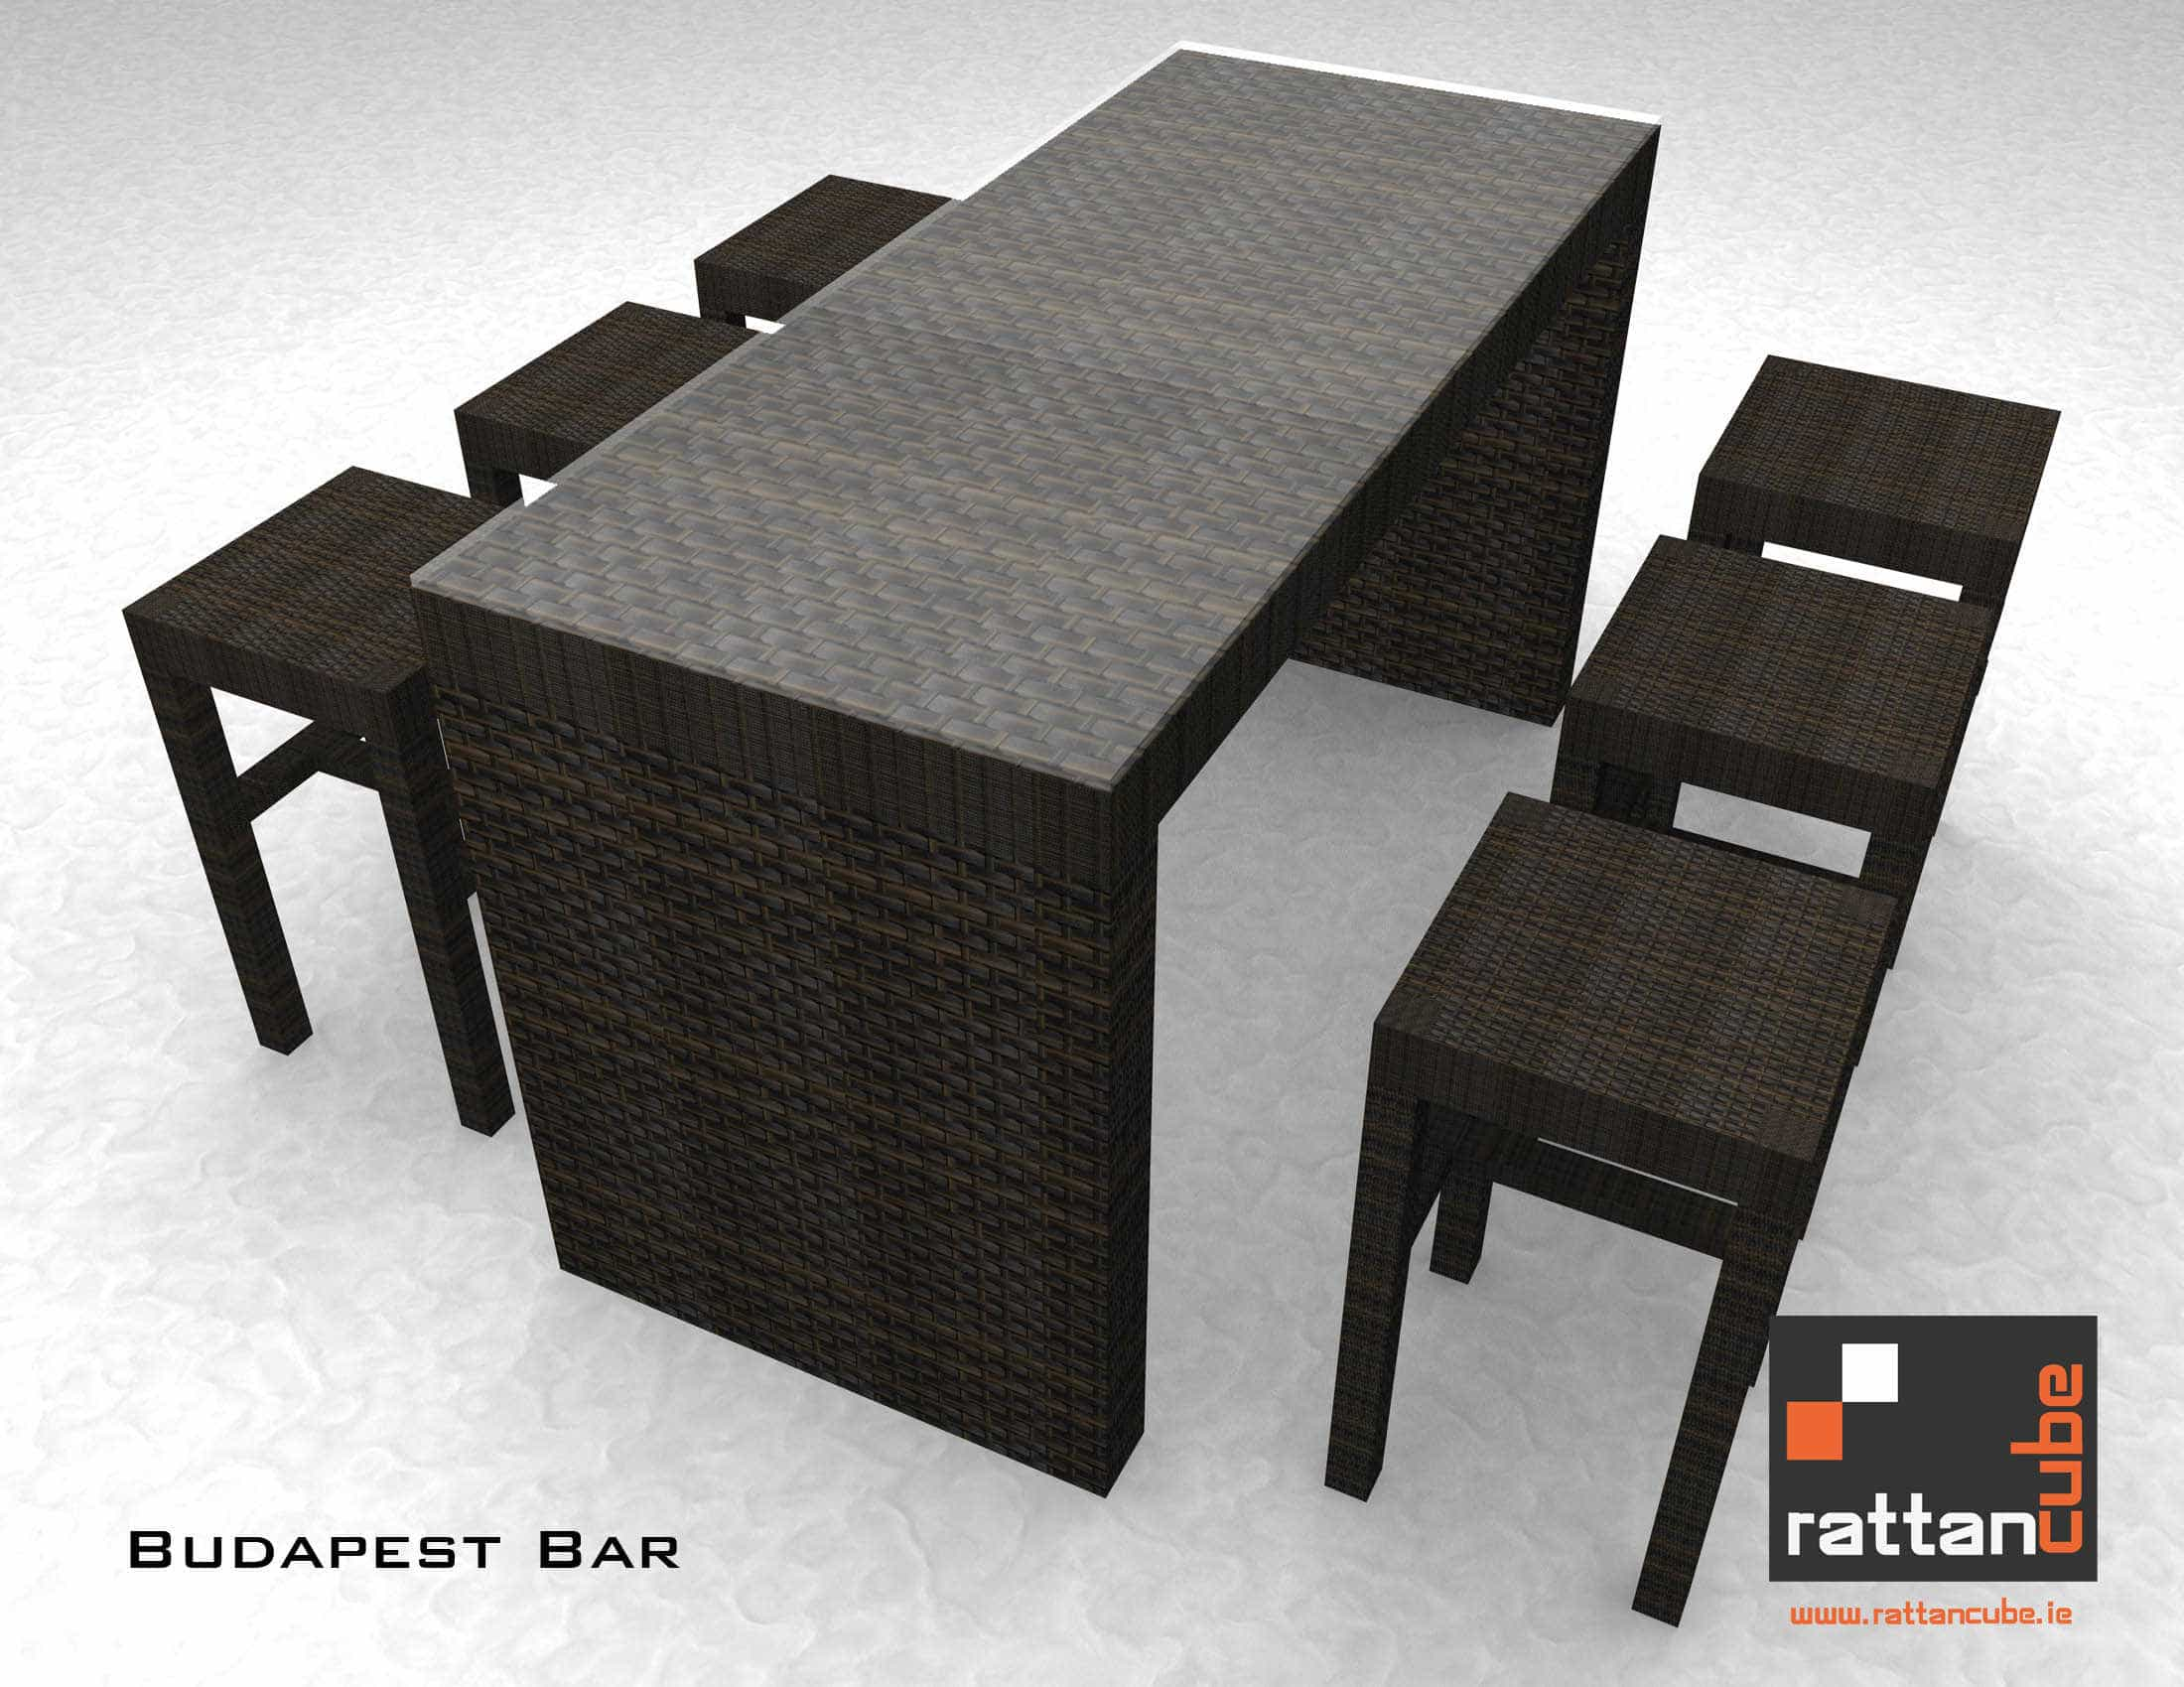 Rattan Corner Sofa Ireland Budapest Bar Garden Furniture Ireland Outdoor Furniture